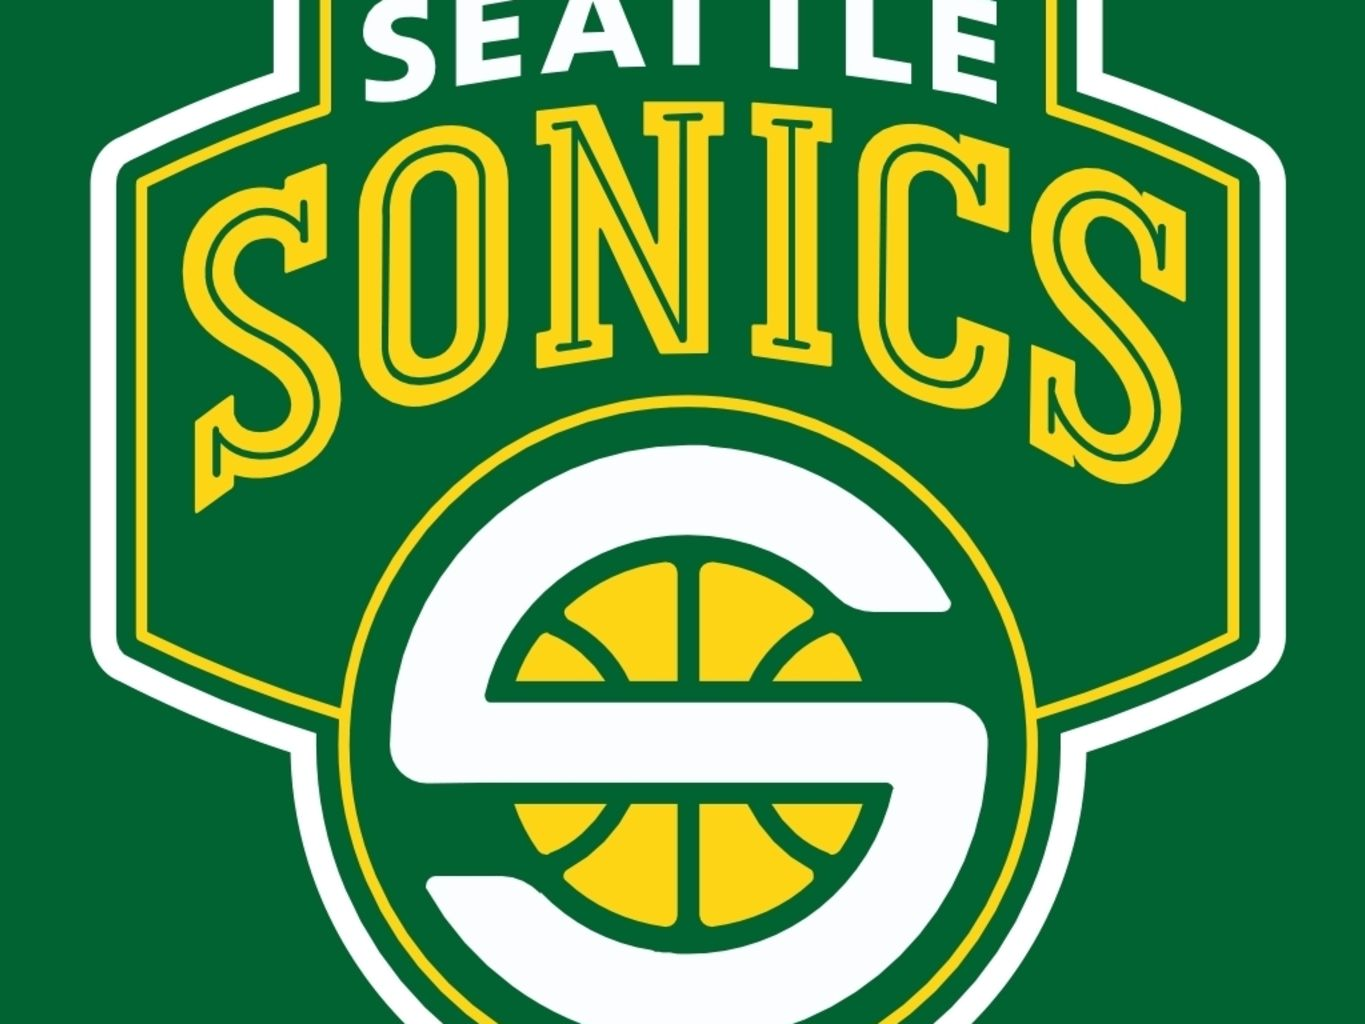 Seattle supersonics rijguo